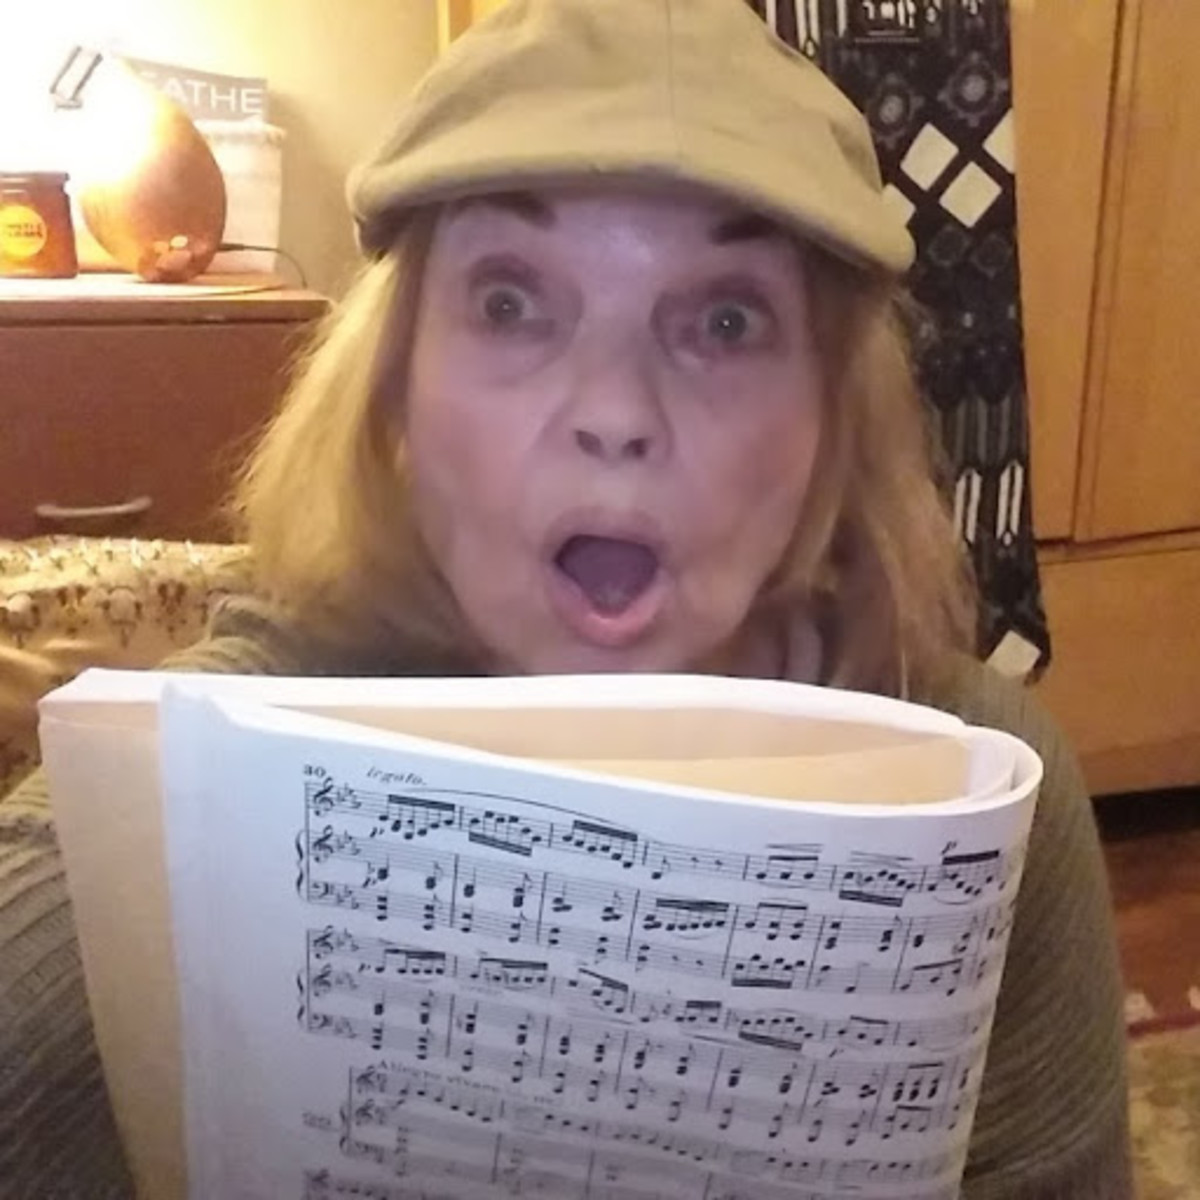 Lifting the eyebrows helps to hit the high notes. Always sing expressively even when practicing.